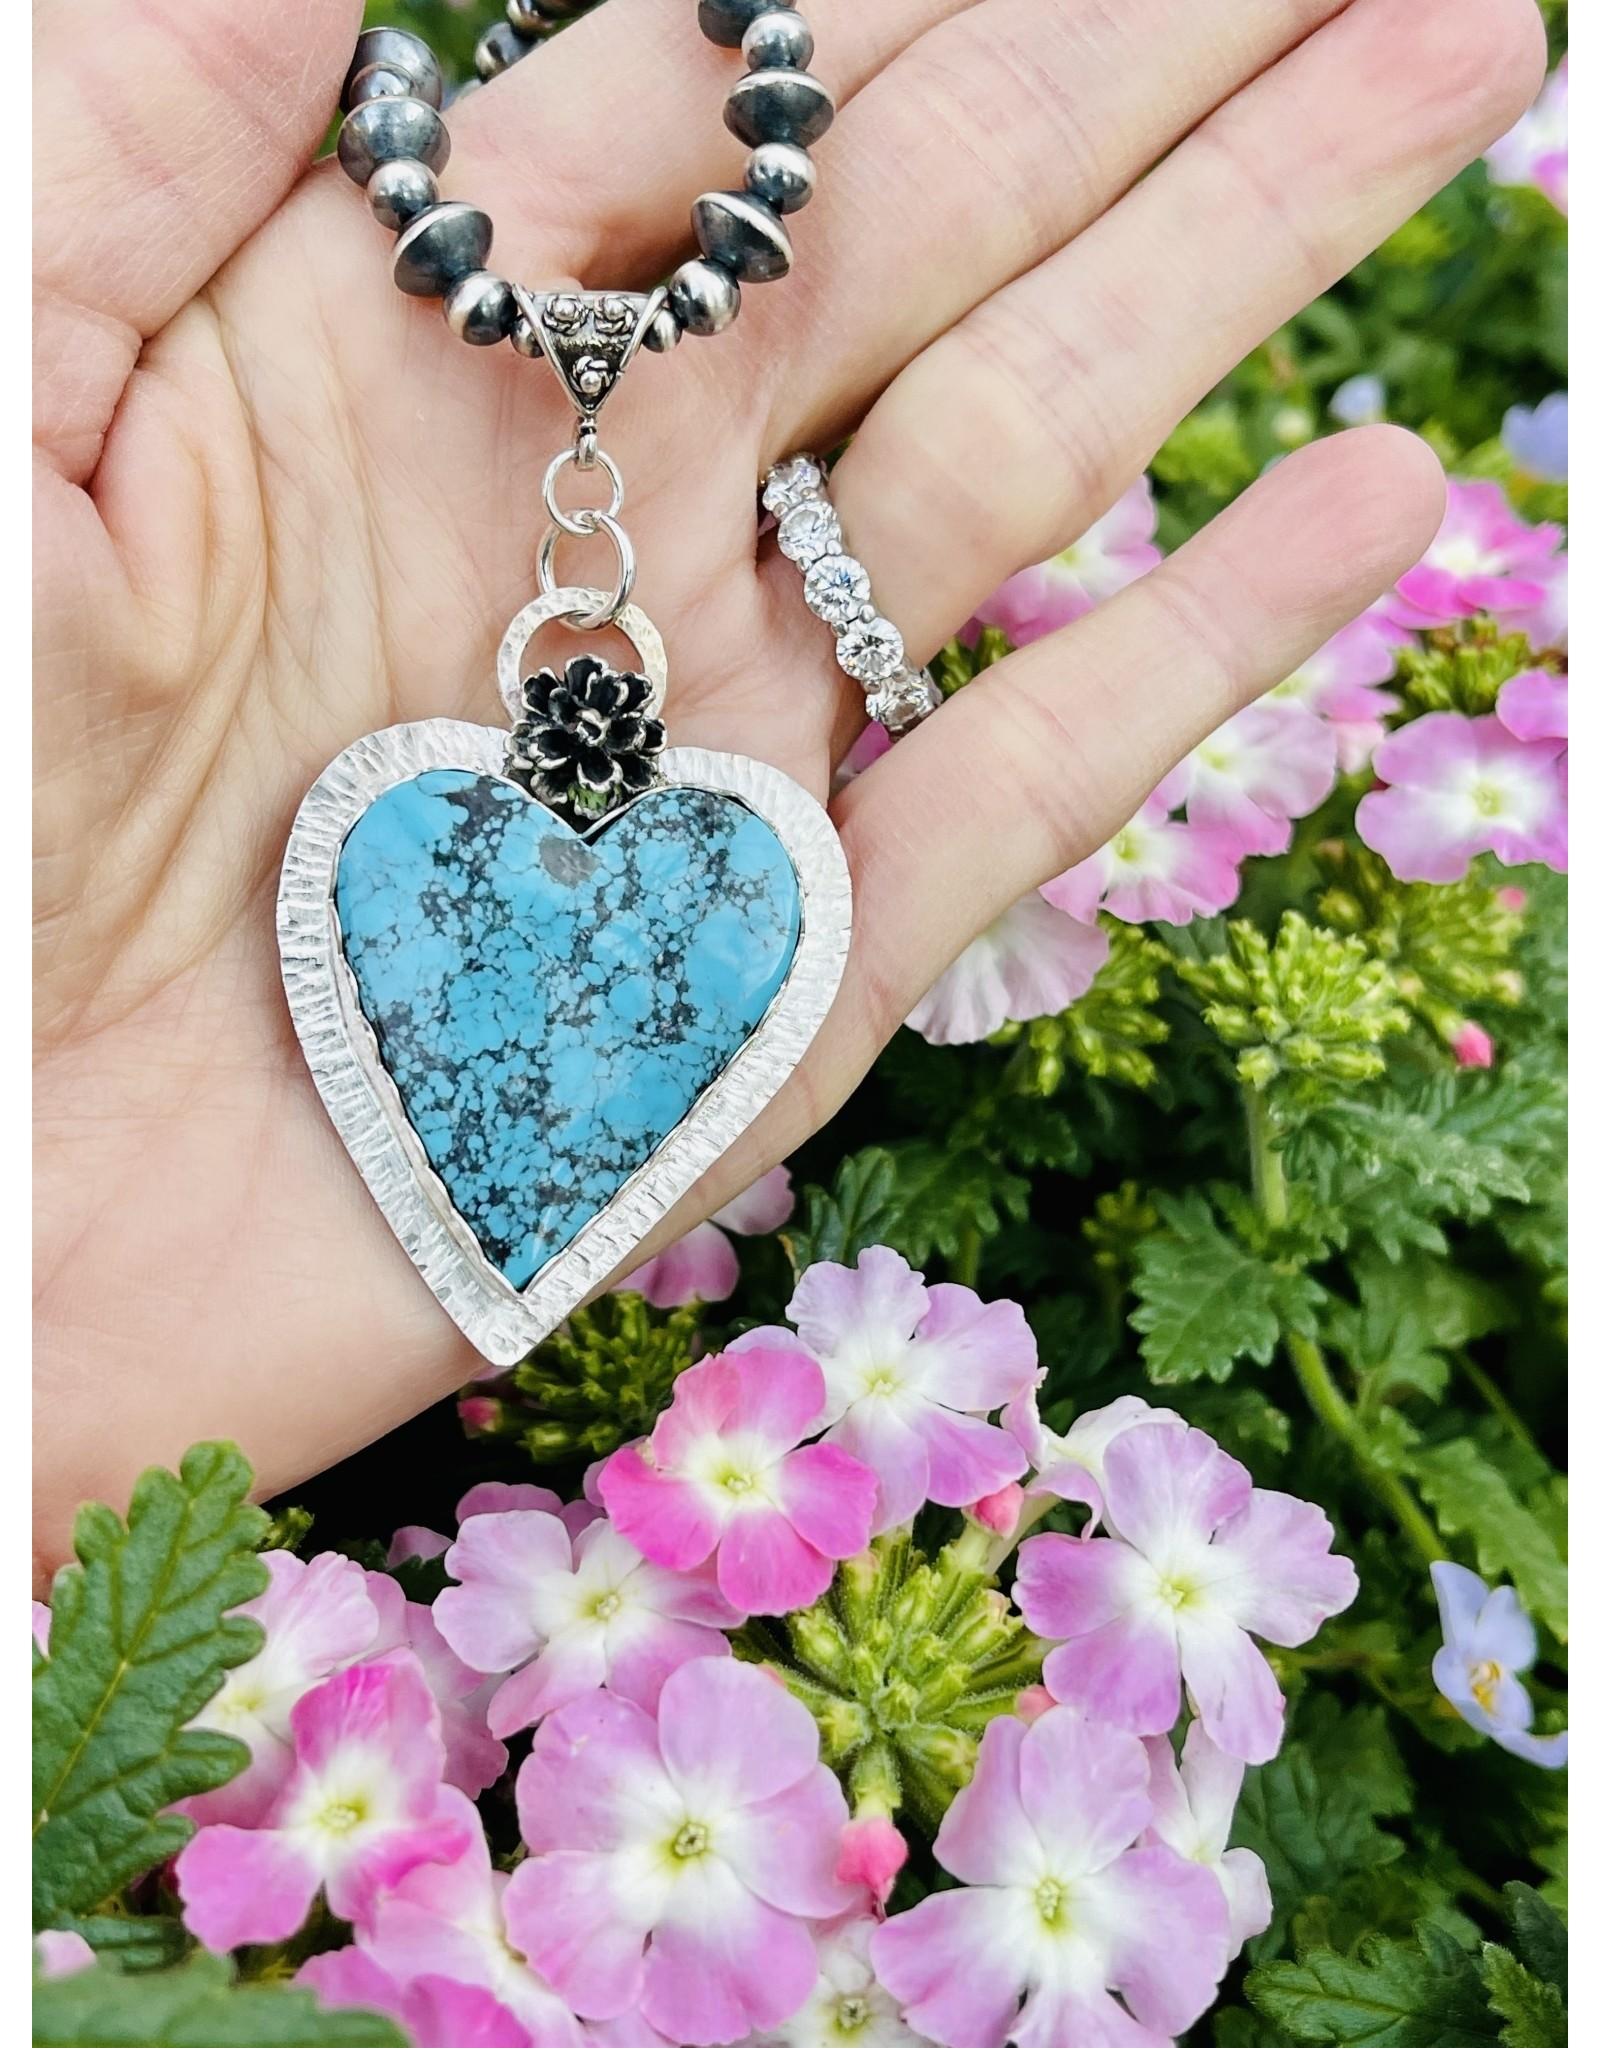 Annette Colby - Jeweler Morenci Turquoise Heart with Flower Necklace  by Annette Colby